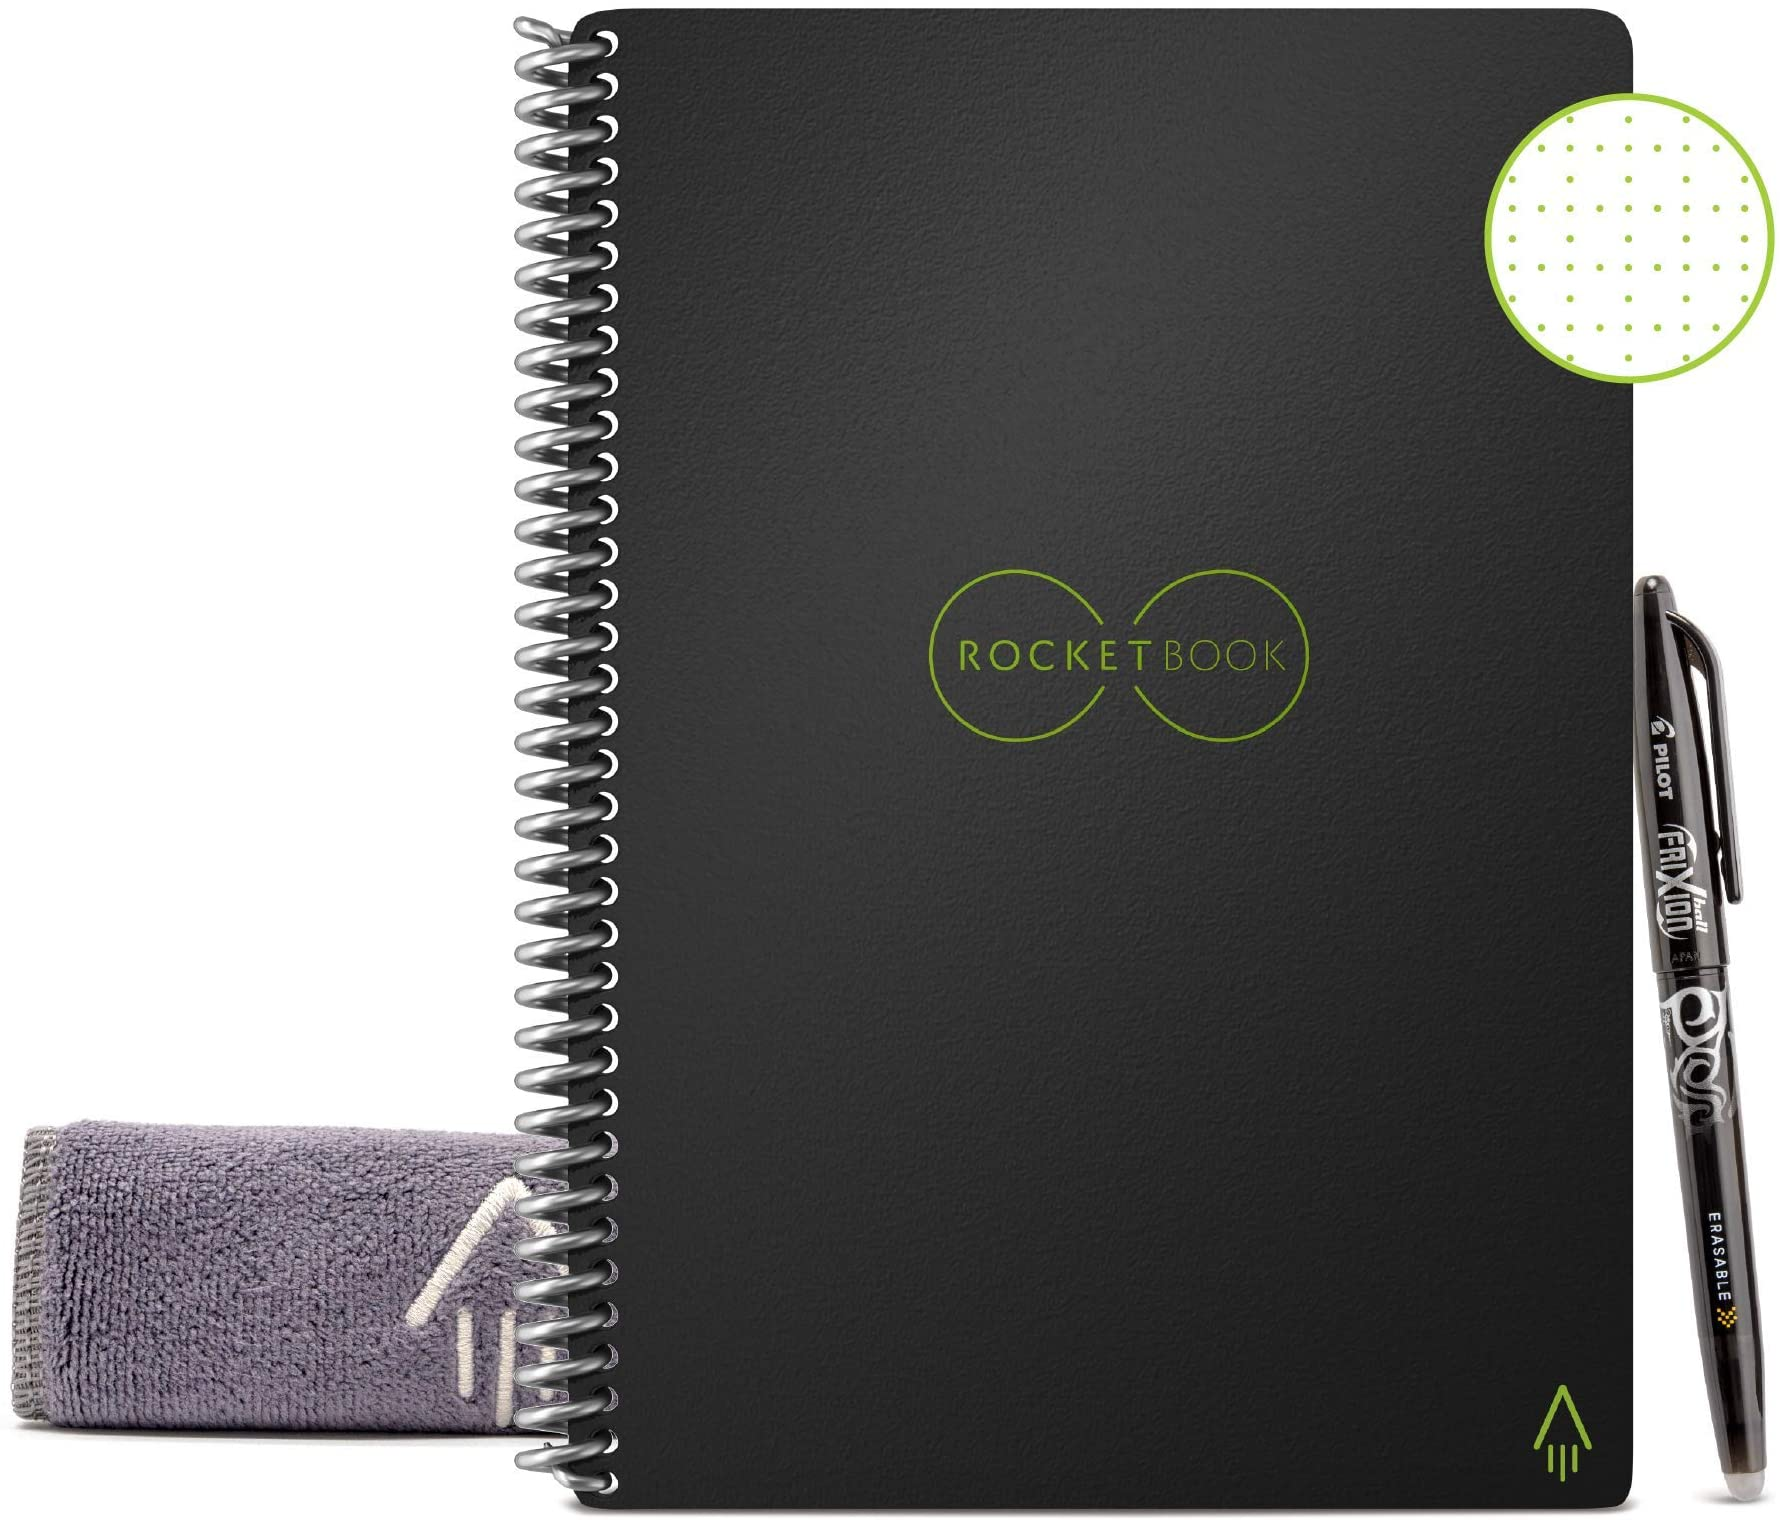 "Rocketbook Smart Reusable Notebook - Dot-Grid Eco-Friendly Notebook with 1 Pilot Frixion Pen & 1 Microfiber Cloth Included - Infinity Black Cover, Letter Size (8.5"" x 11"")"